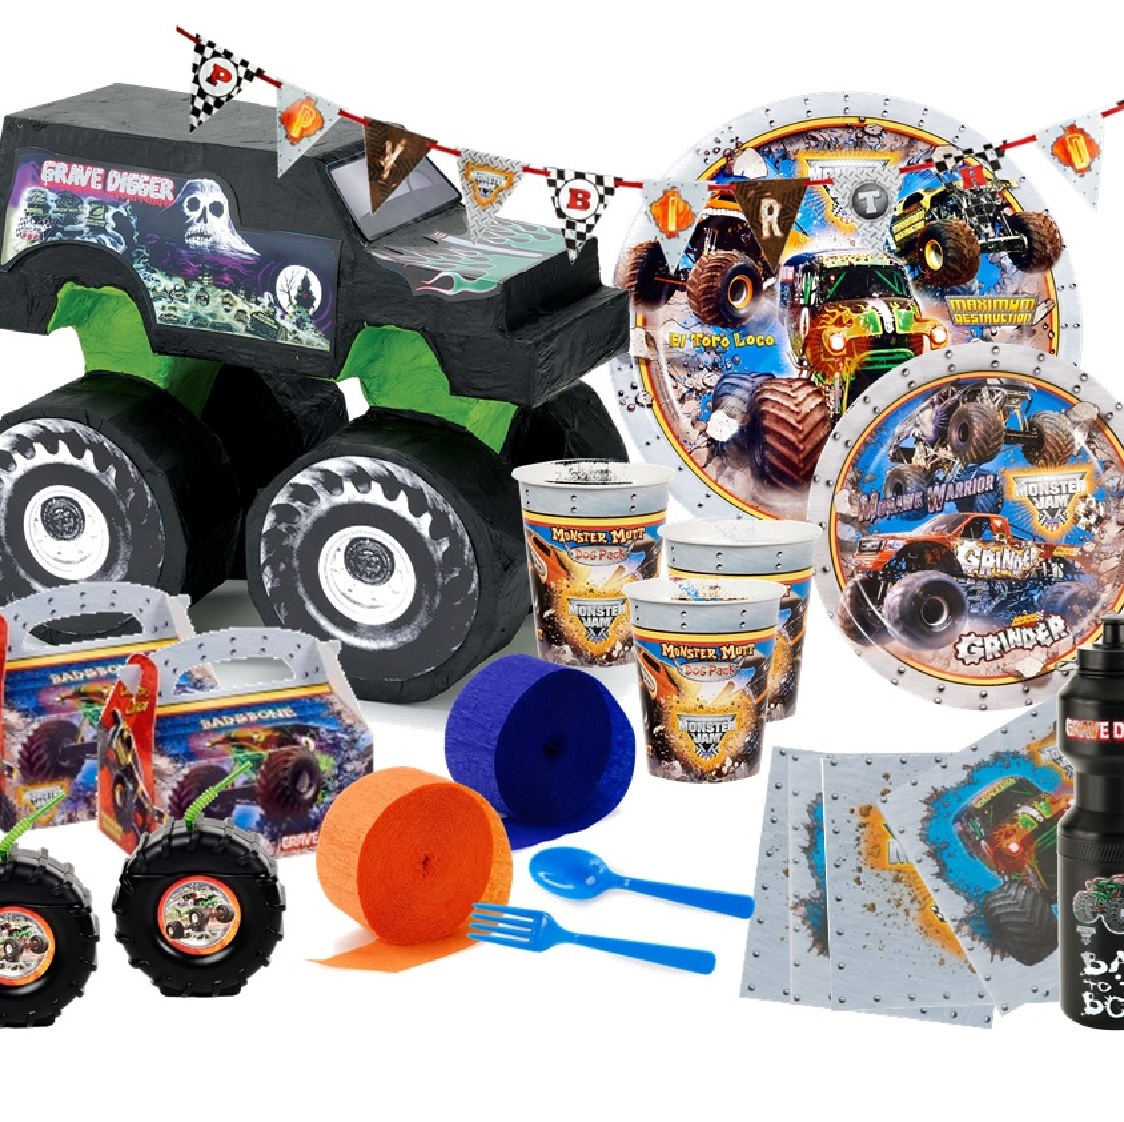 Lunch Truck For Sale >> monster jam truck 3d party pack, monster jam truck party pack